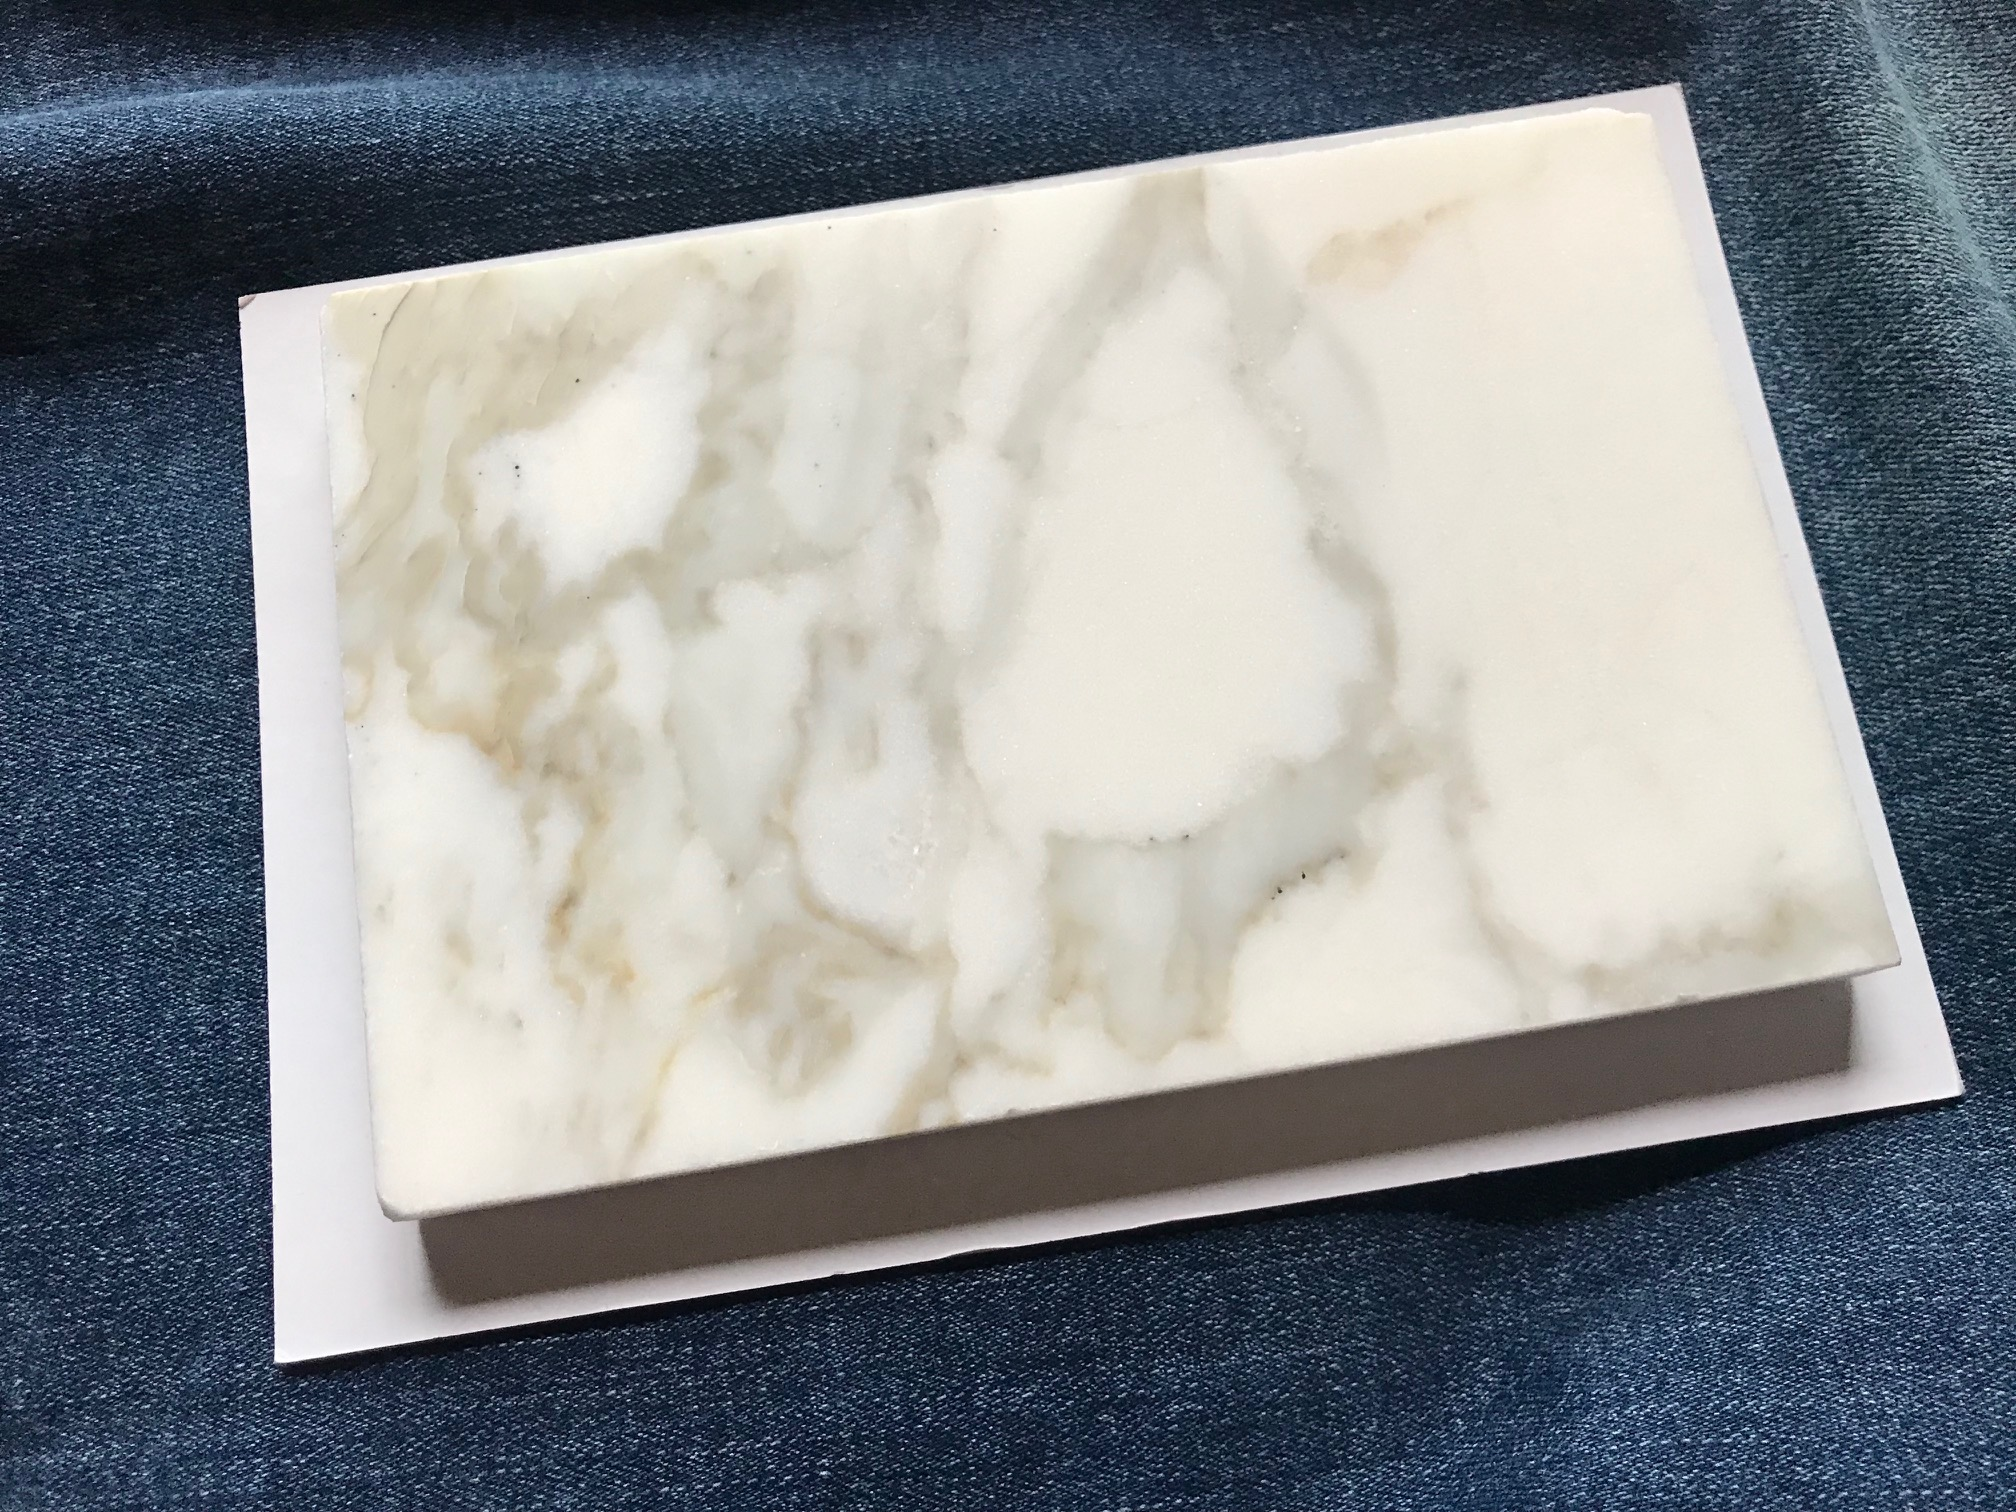 Calacatt Gold Polished Marble tile from tilebar: non-detect (negative) for Lead, Cadmium, Mercury and Arsenic